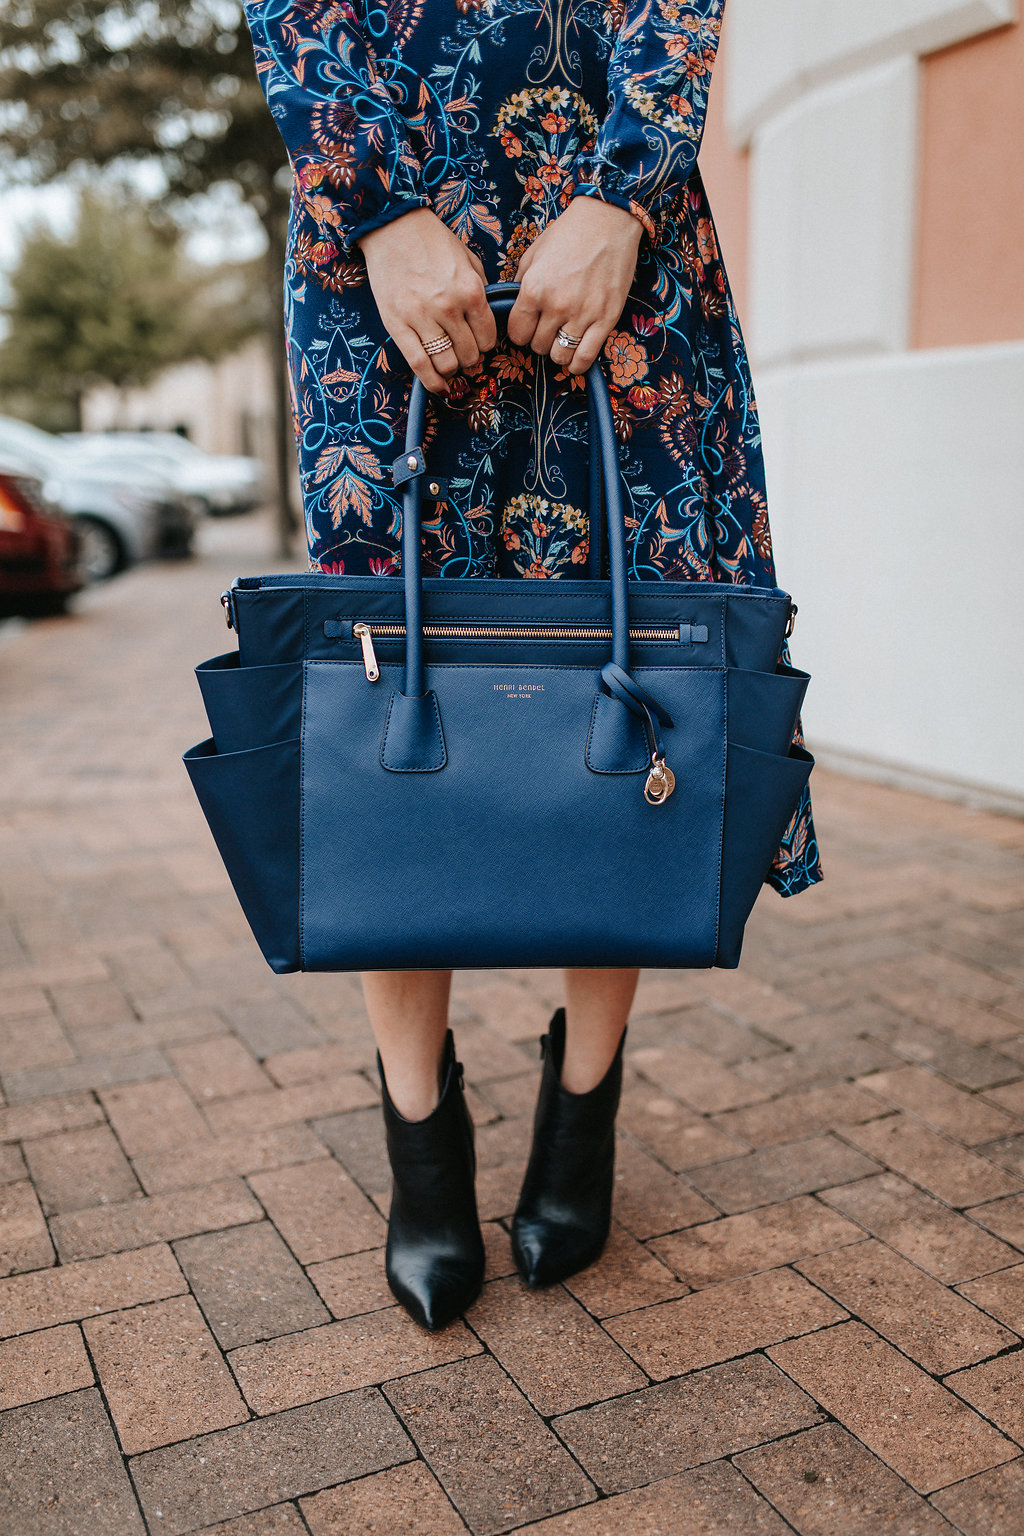 Housont fashion blogger Uptown with Elly Brown wears a blue diaper bag from Henri Bendel!